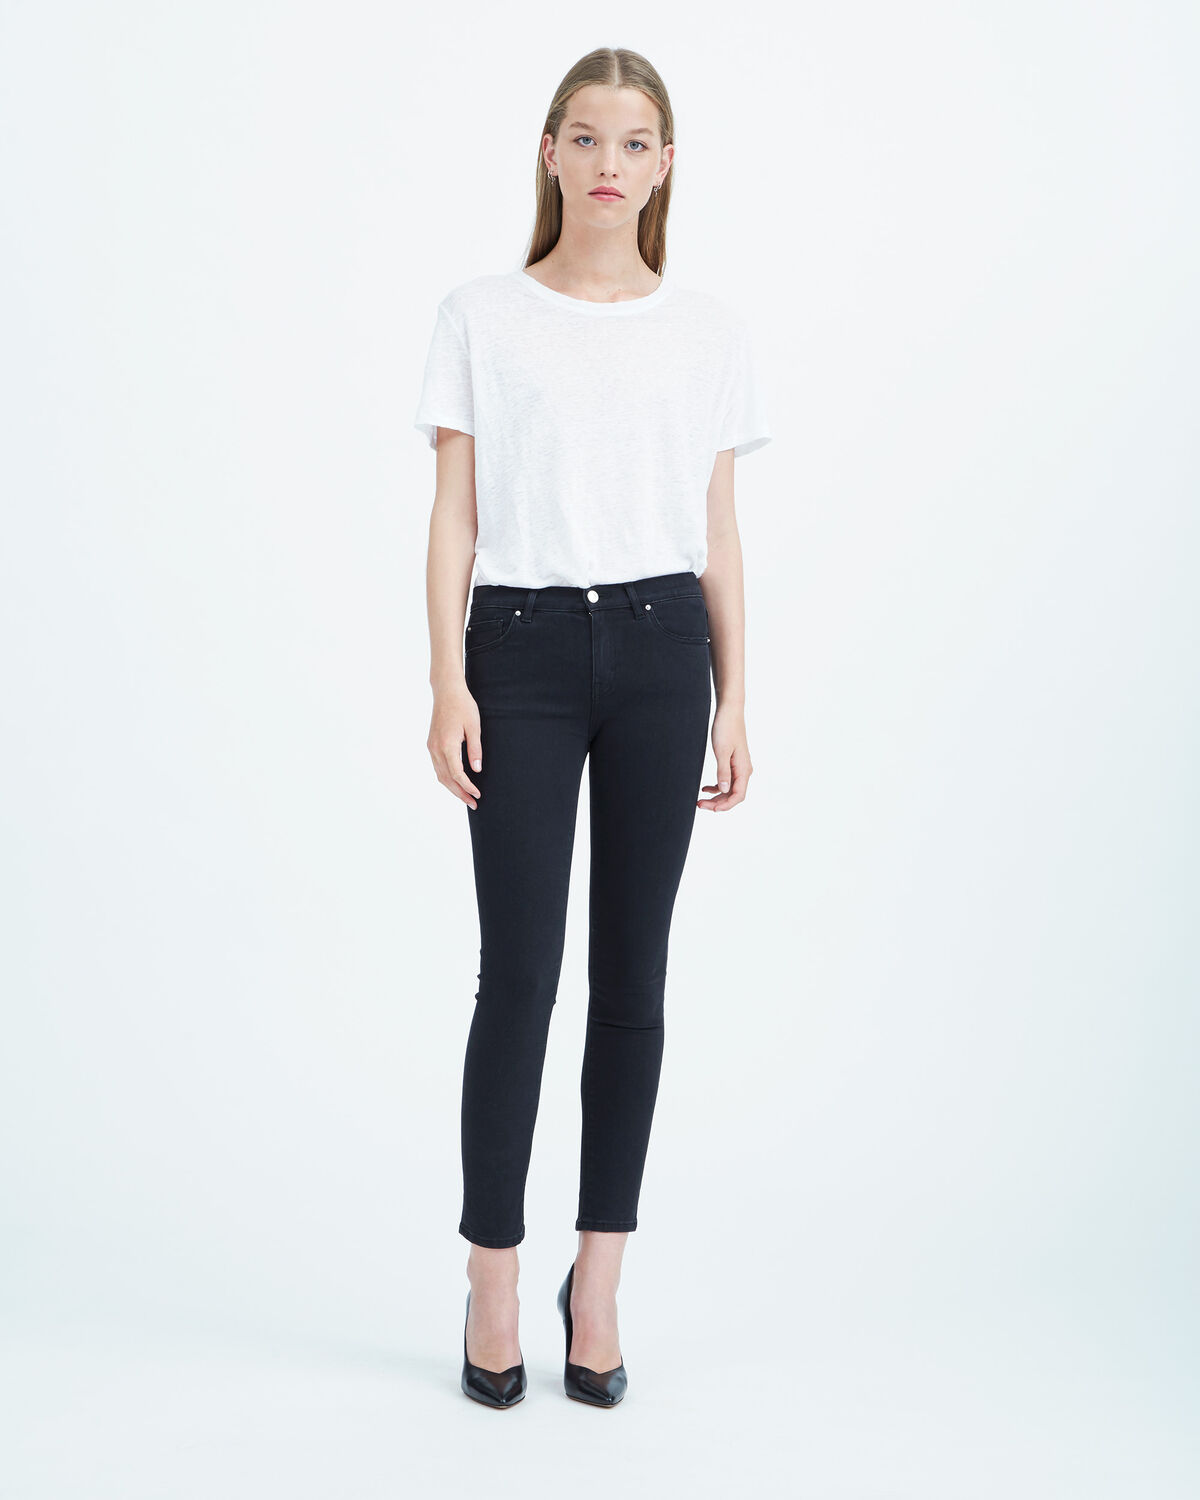 IRO - LYN JEANS BLACK DENIM